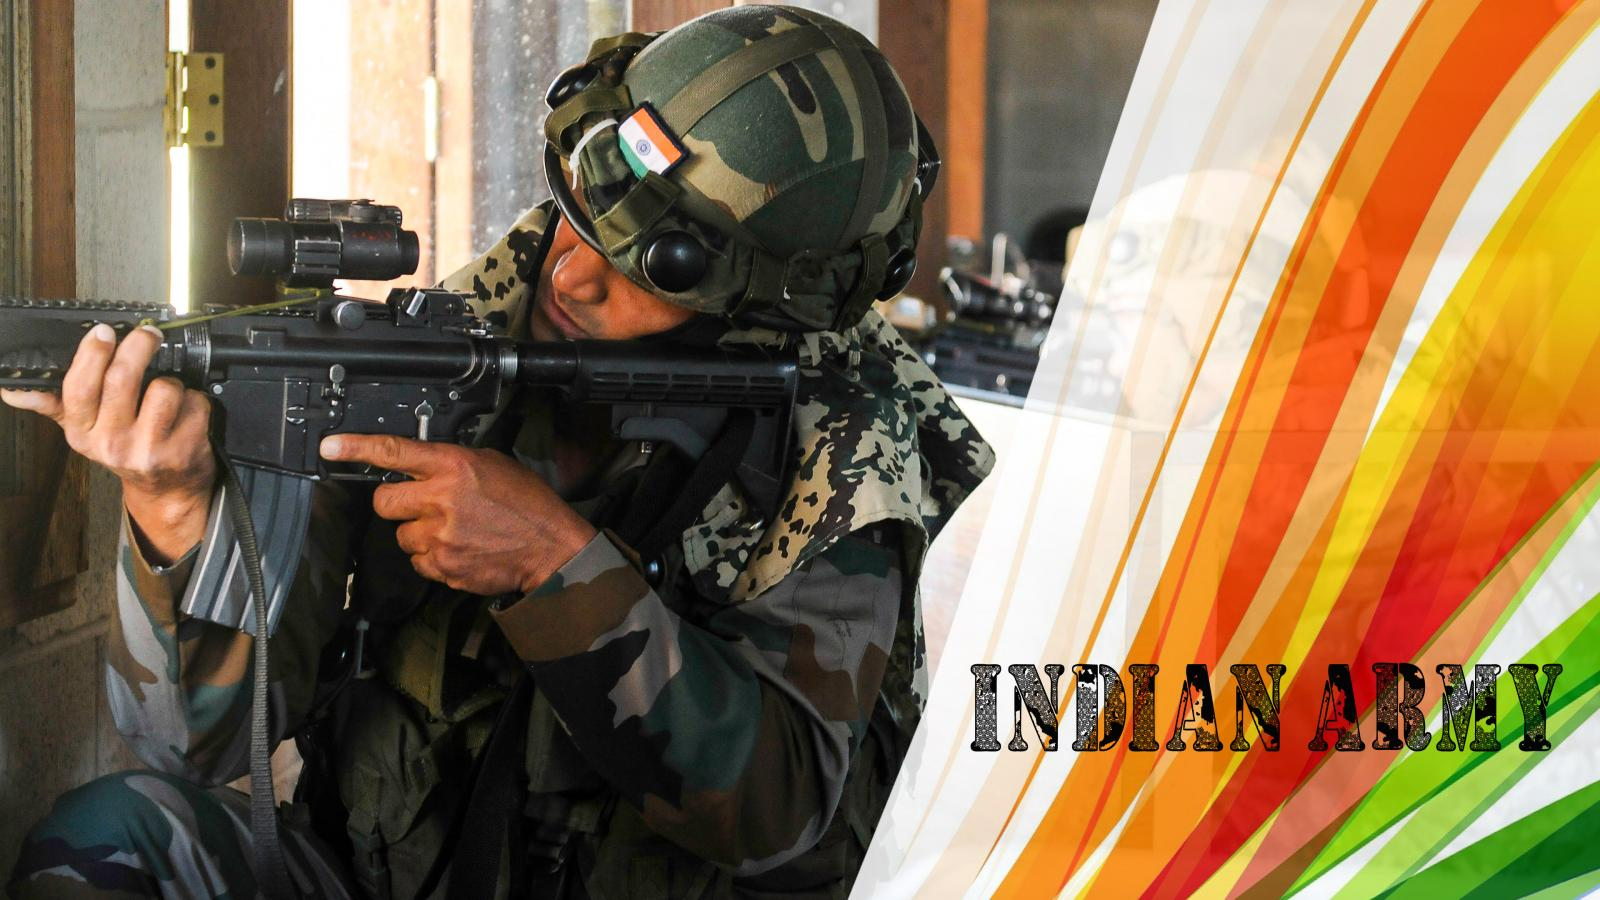 Indian Army Wallpapers Hd Free Download: Indian Army Picture With Tiranga Decoration